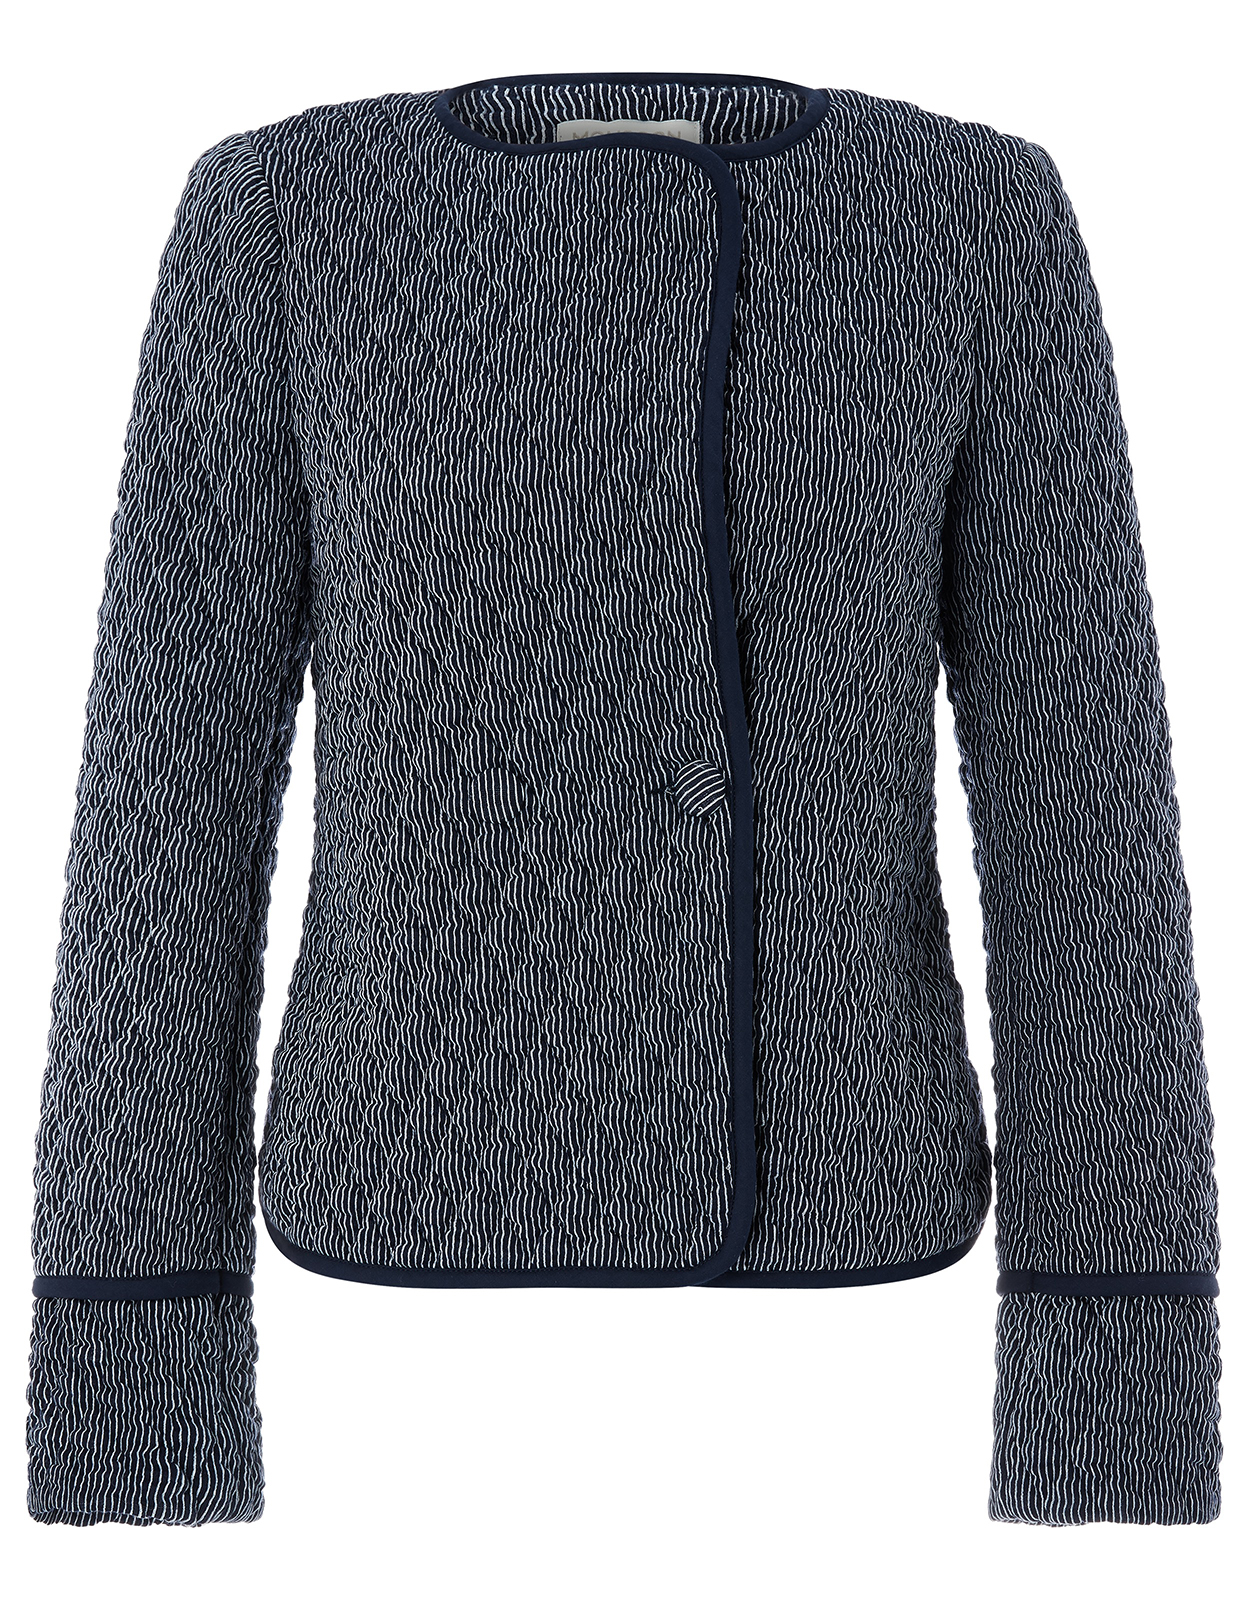 Monsoon quilted jacket